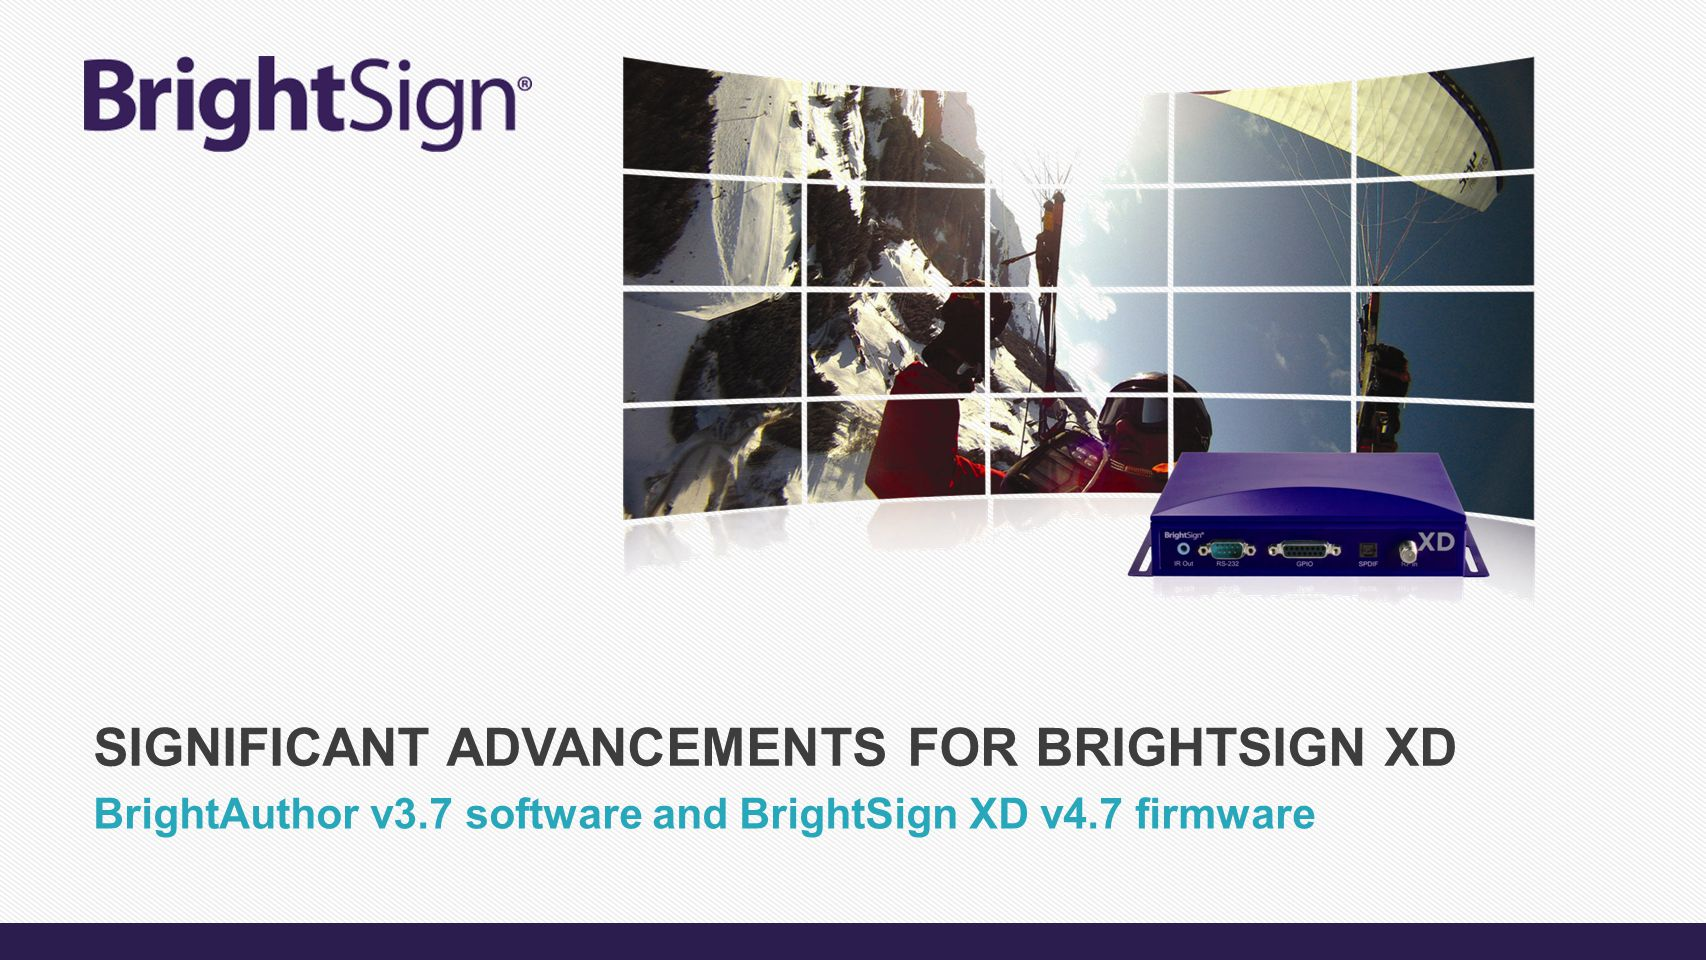 BrightAuthor v3.7 software and BrightSign XD v4.7 firmware